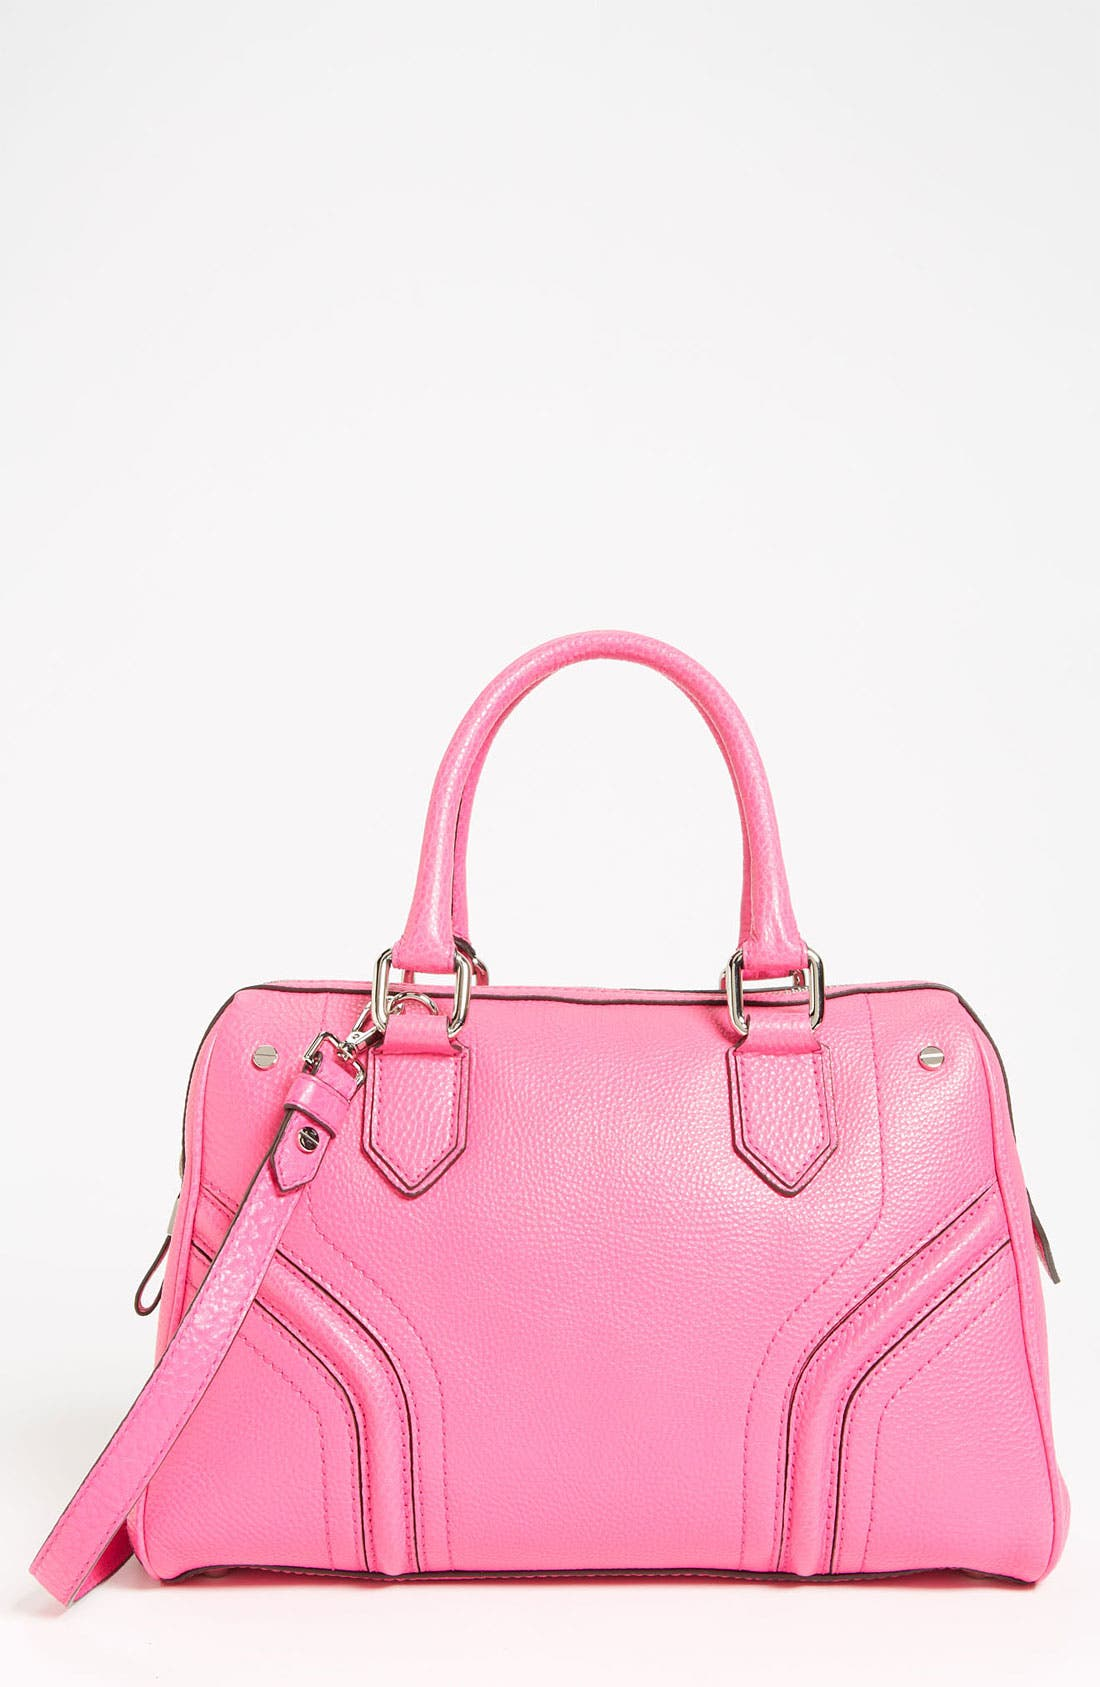 Alternate Image 1 Selected - Milly 'Zoey' Satchel